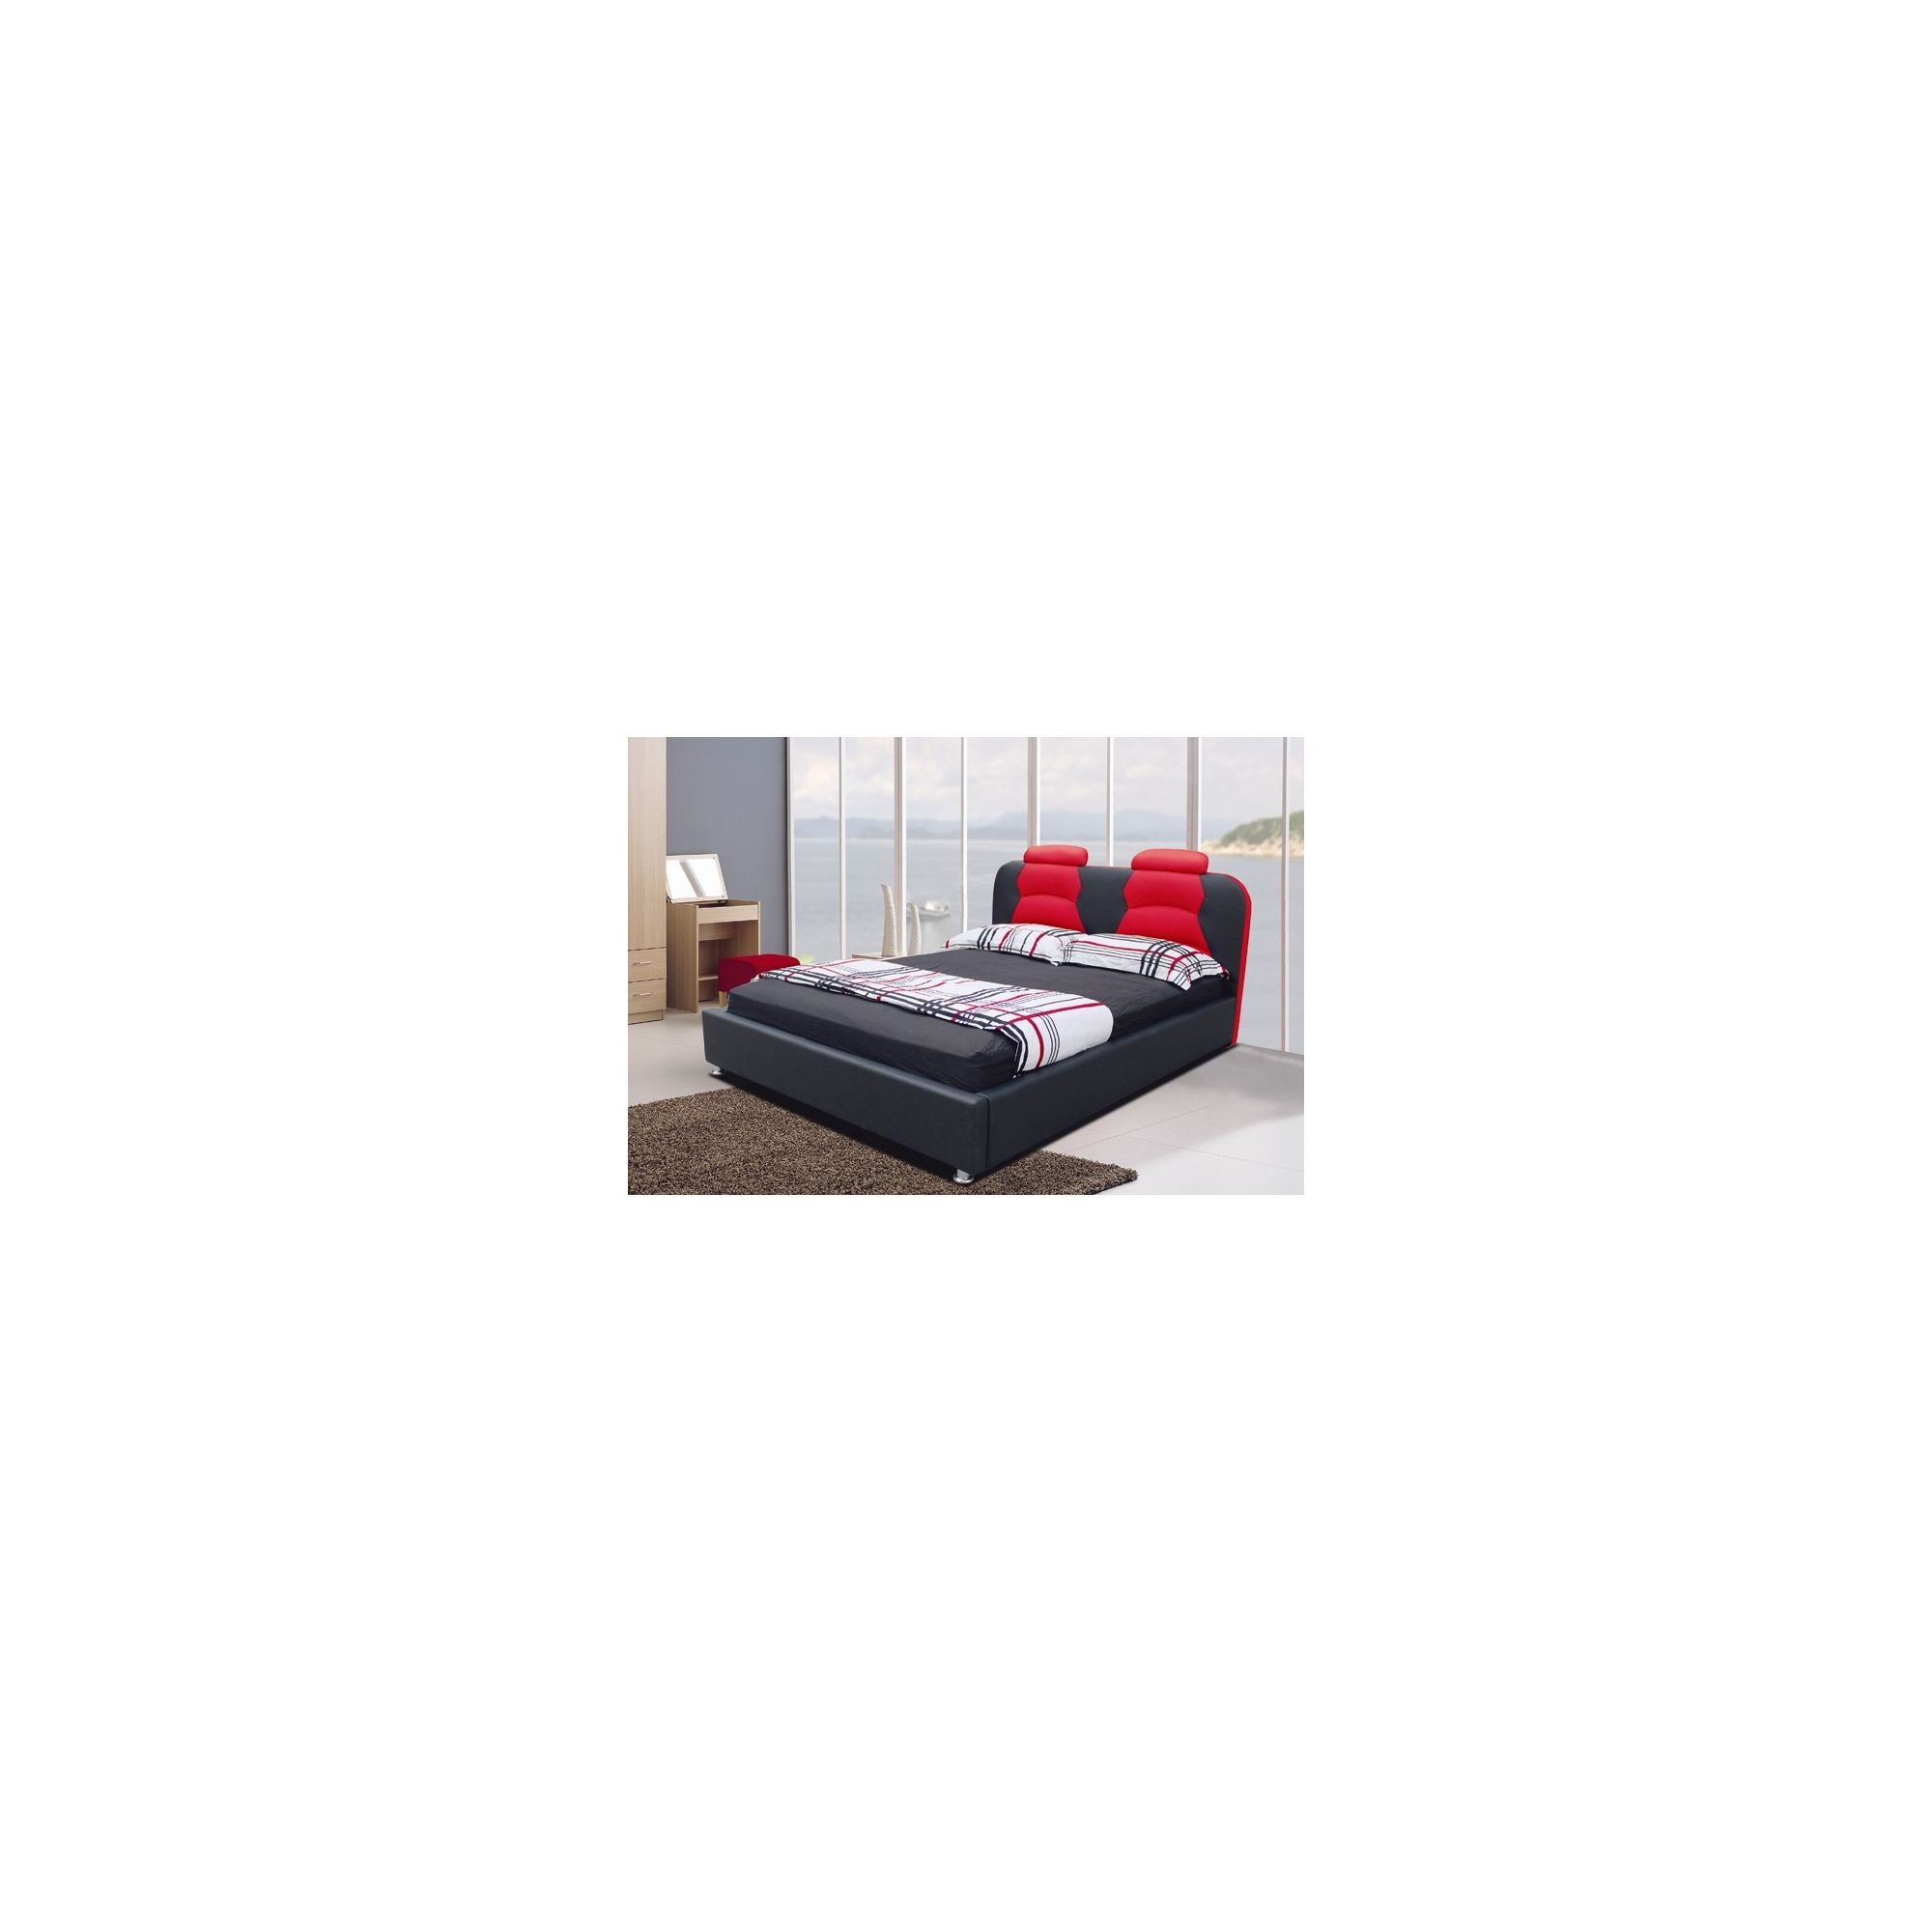 Giomani Designs Designer Double Bed - Red / Black at Tesco Direct